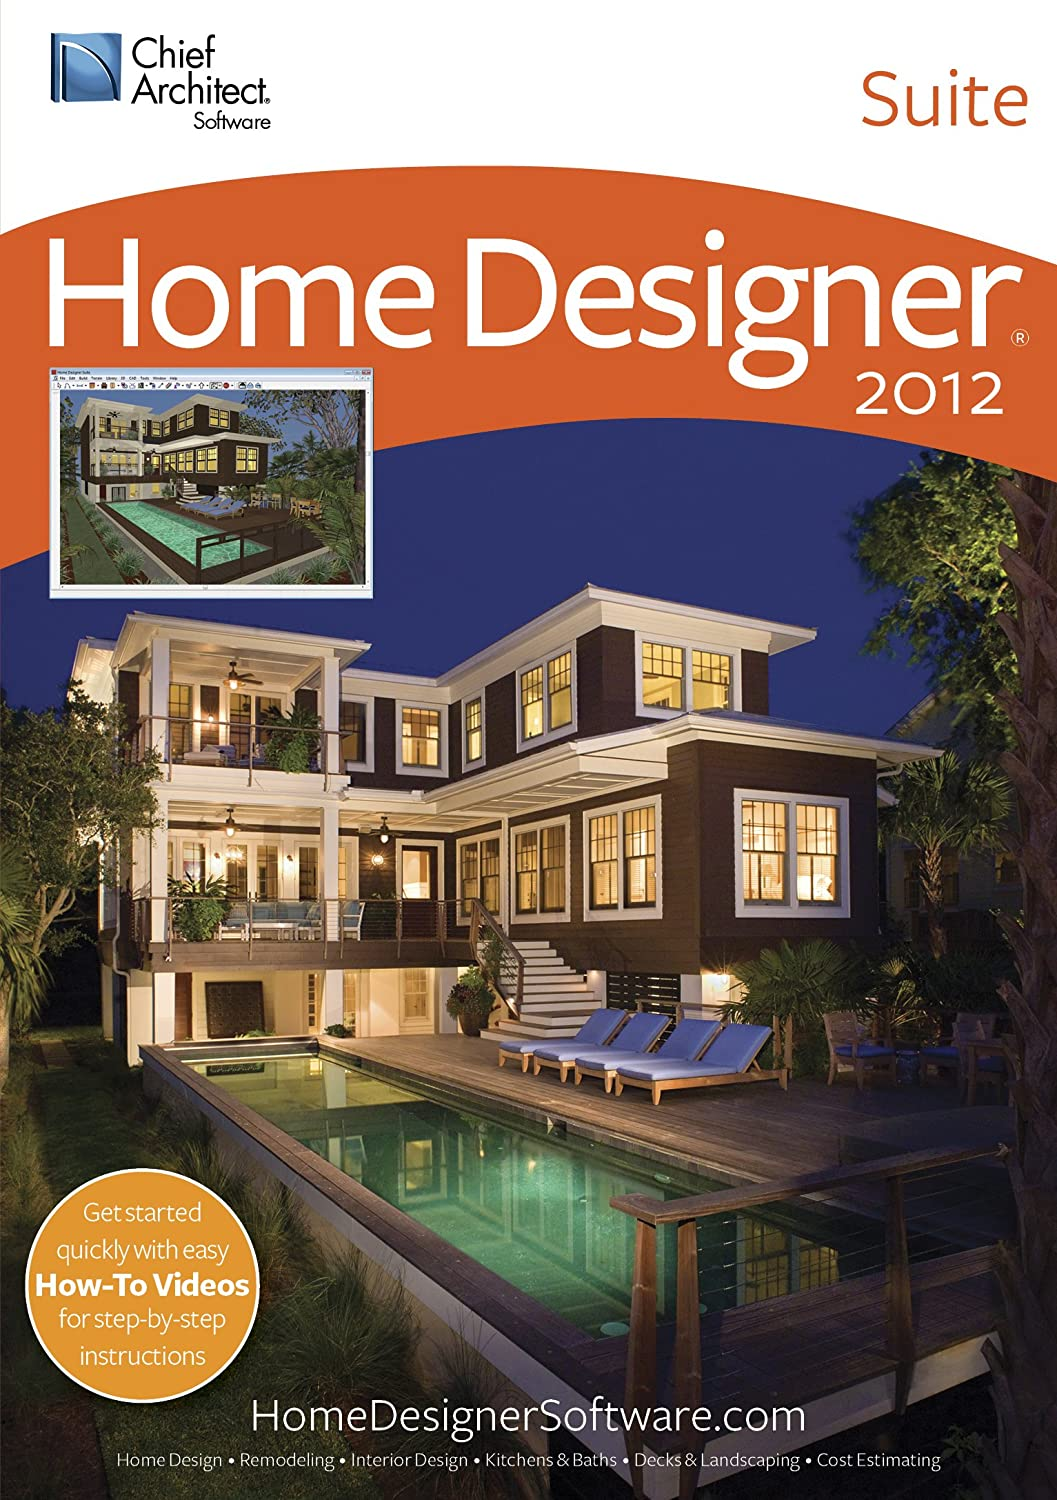 Amazon com  Home Designer Suite 2012  Download  Software. 3d Home Architect Design Suite Deluxe 8 Download. Home Design Ideas